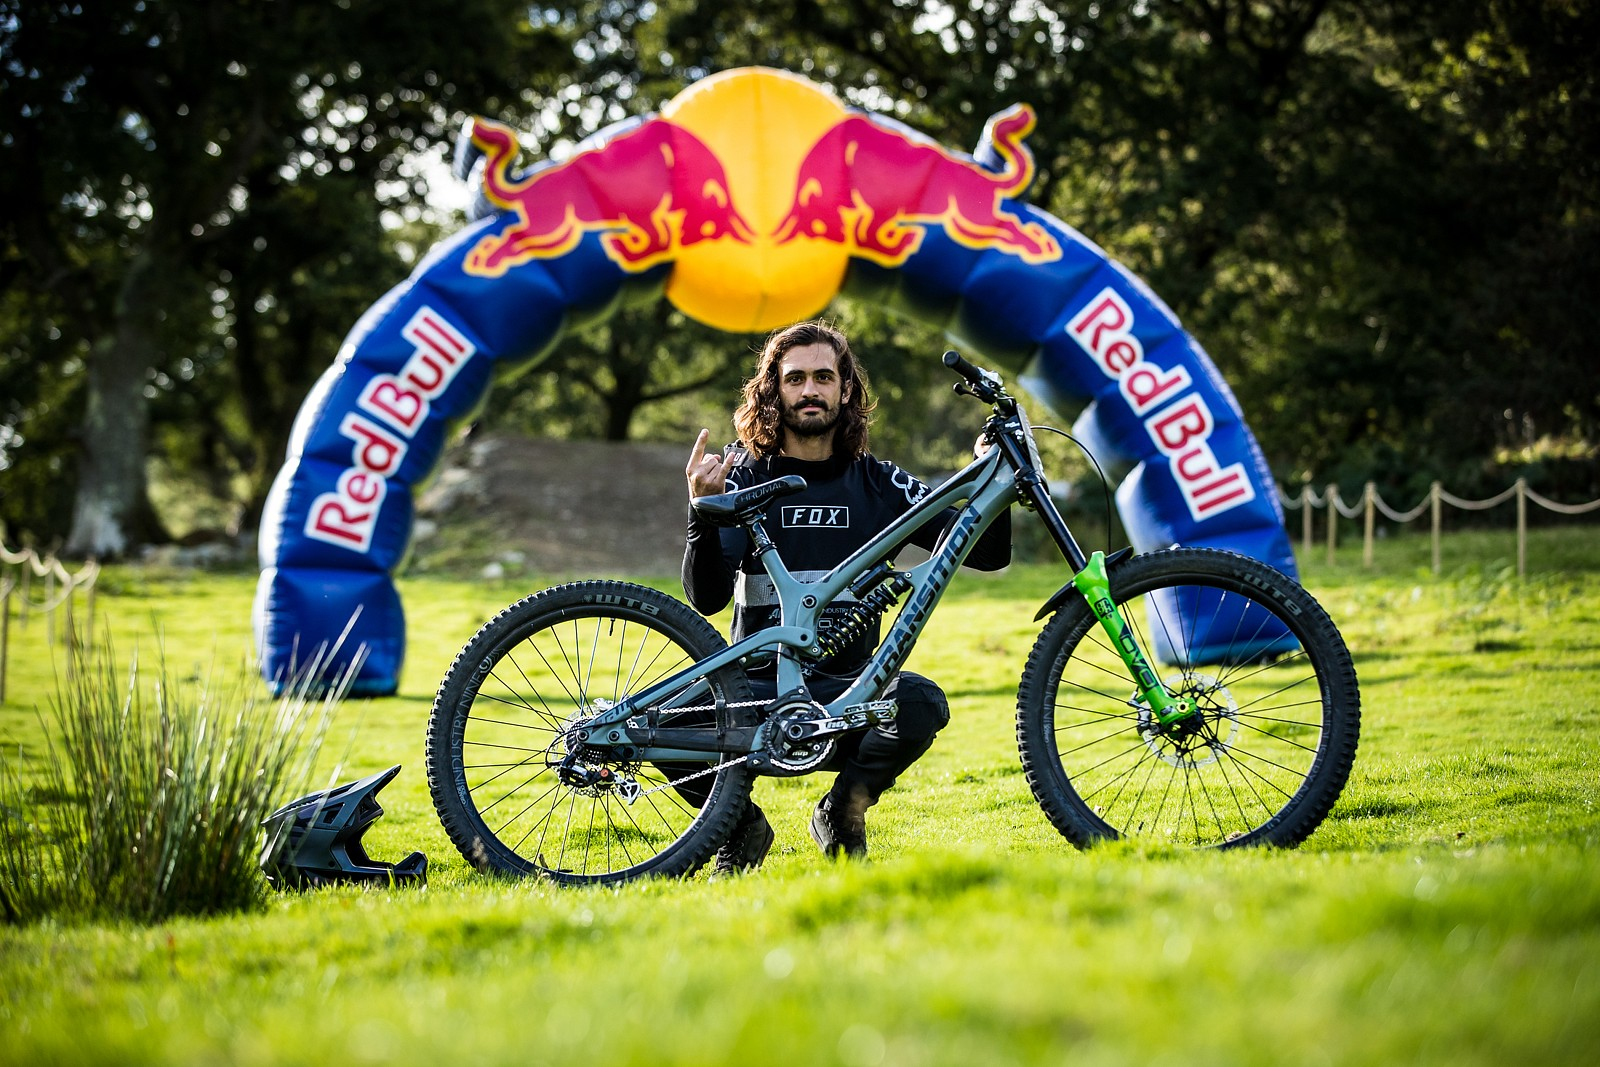 Juan Diego Salido with his Transtion TR11 - The Bikes of Red Bull Hardline - Mountain Biking Pictures - Vital MTB